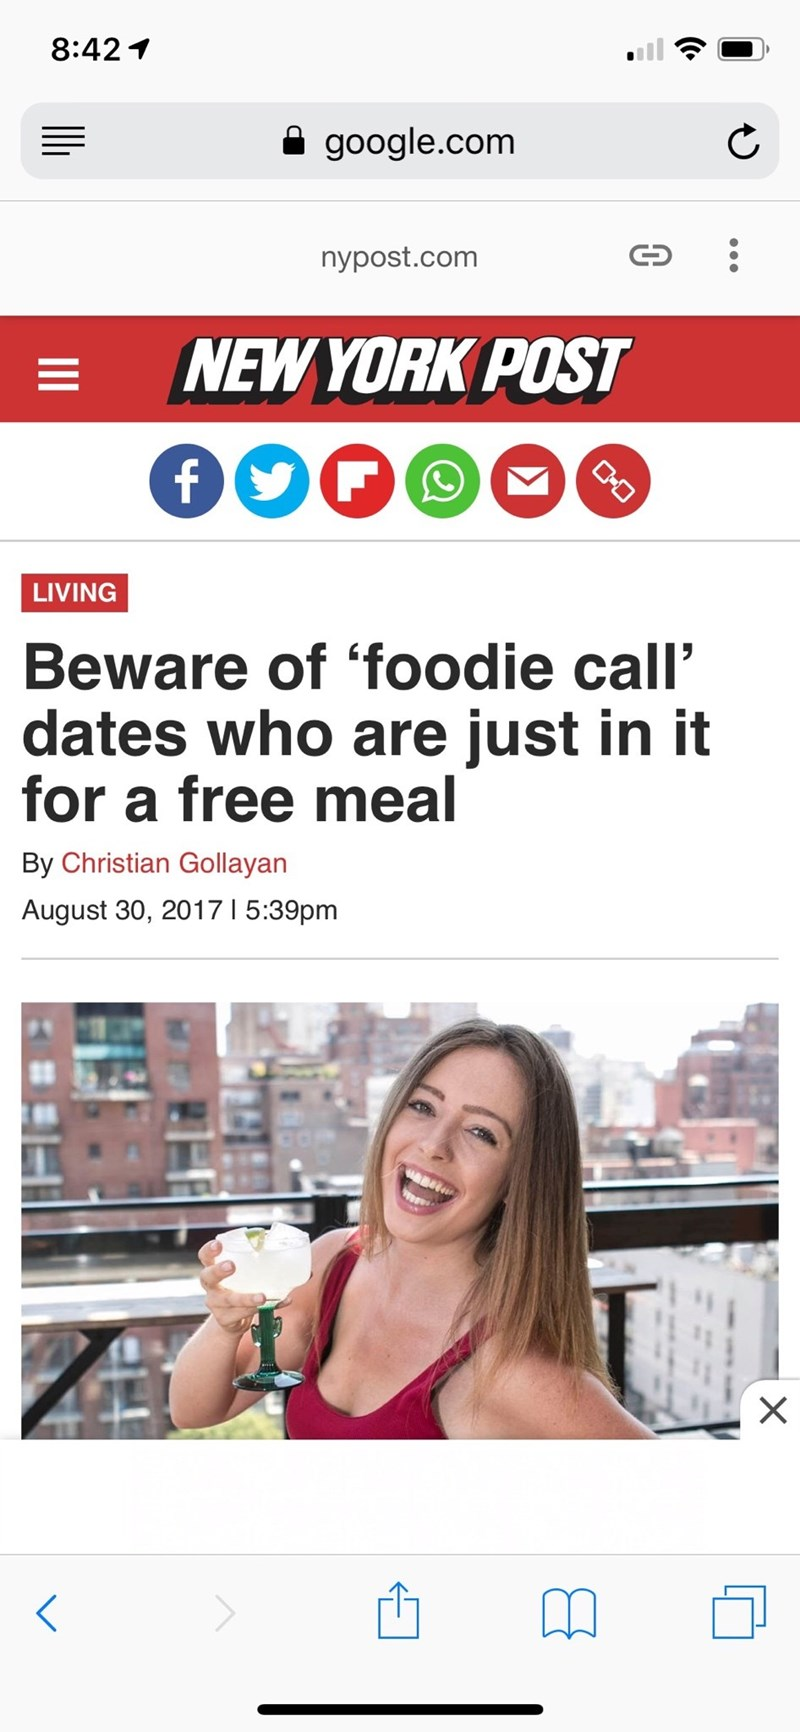 Font - 8:42 google.com nypost.com NEW YORK POST C-O LIVING Beware of 'foodie call' dates who are just in it for a free meal By Christian Gollayan 5:39pm August 30, 2017 < X